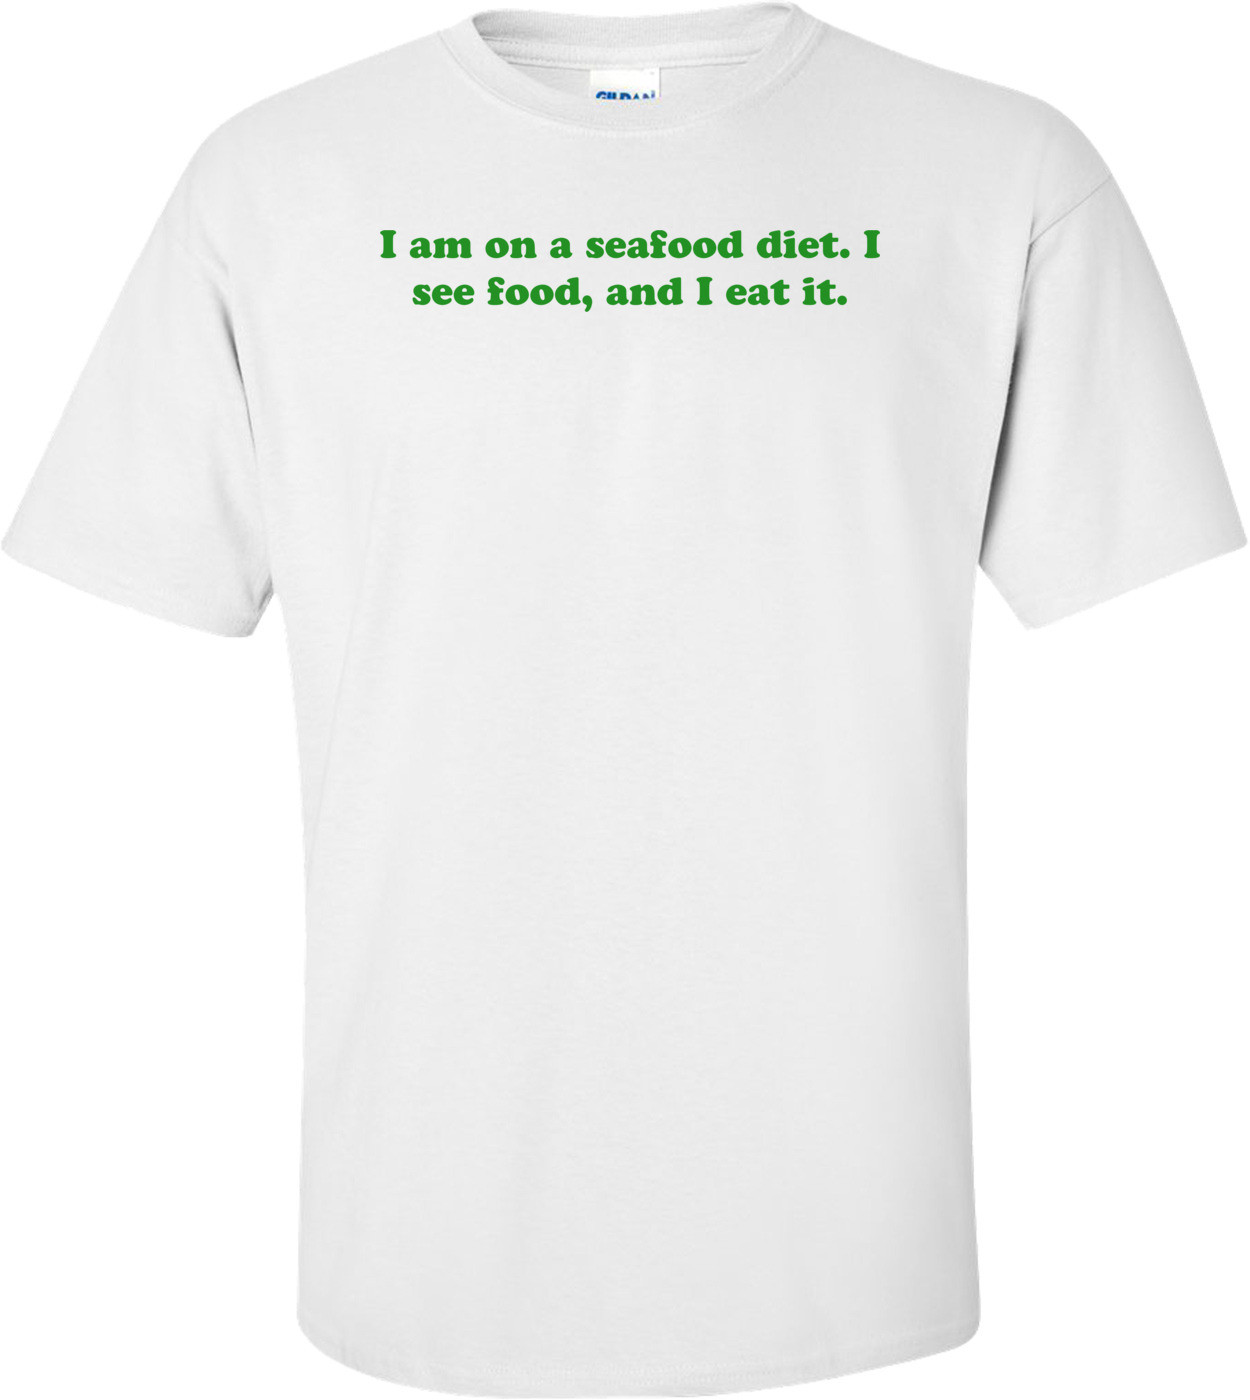 I am on a seafood diet. I see food, and I eat it. Shirt